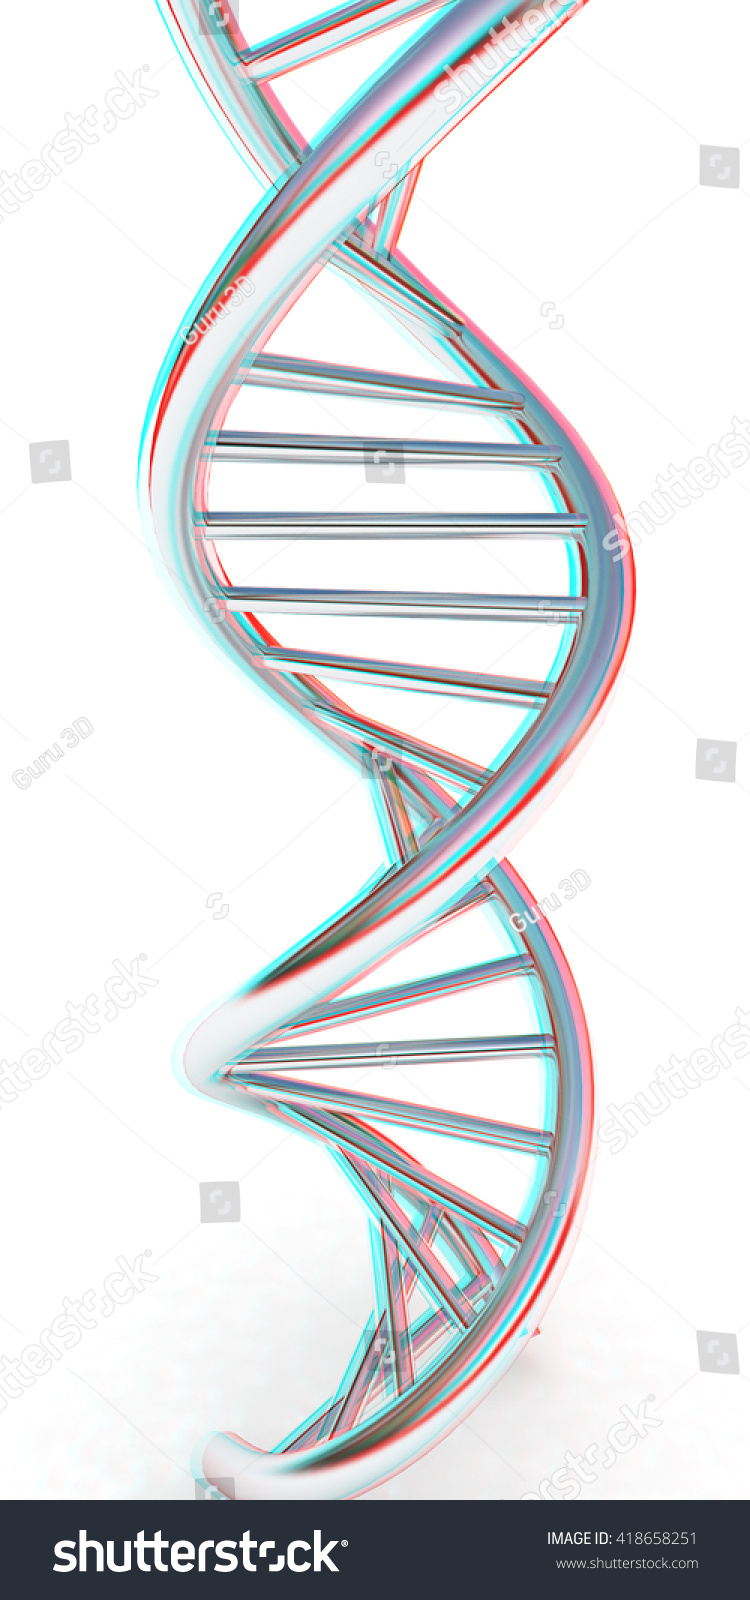 Dna structure model on white 3d stock illustration 418658251 dna structure model on white 3d illustration anaglyph view with redcyan ccuart Gallery